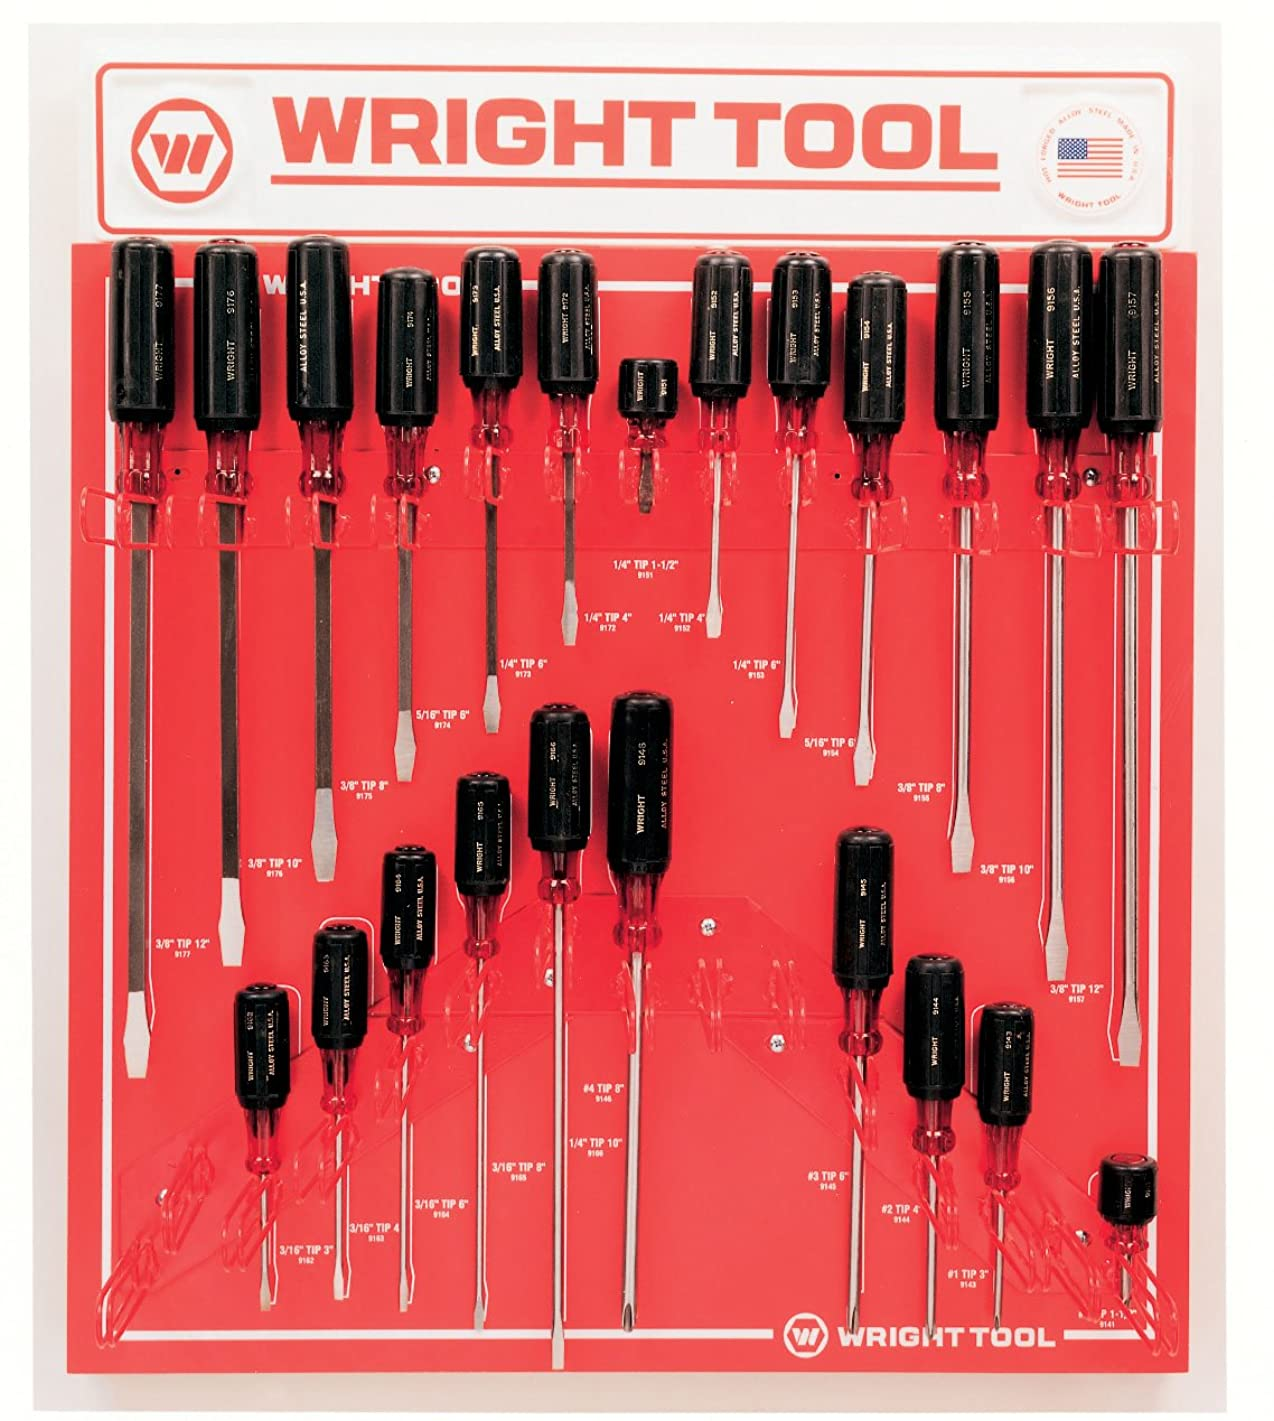 Wright Tool D974B Large Cushion-Grip Handle Screwdrivers